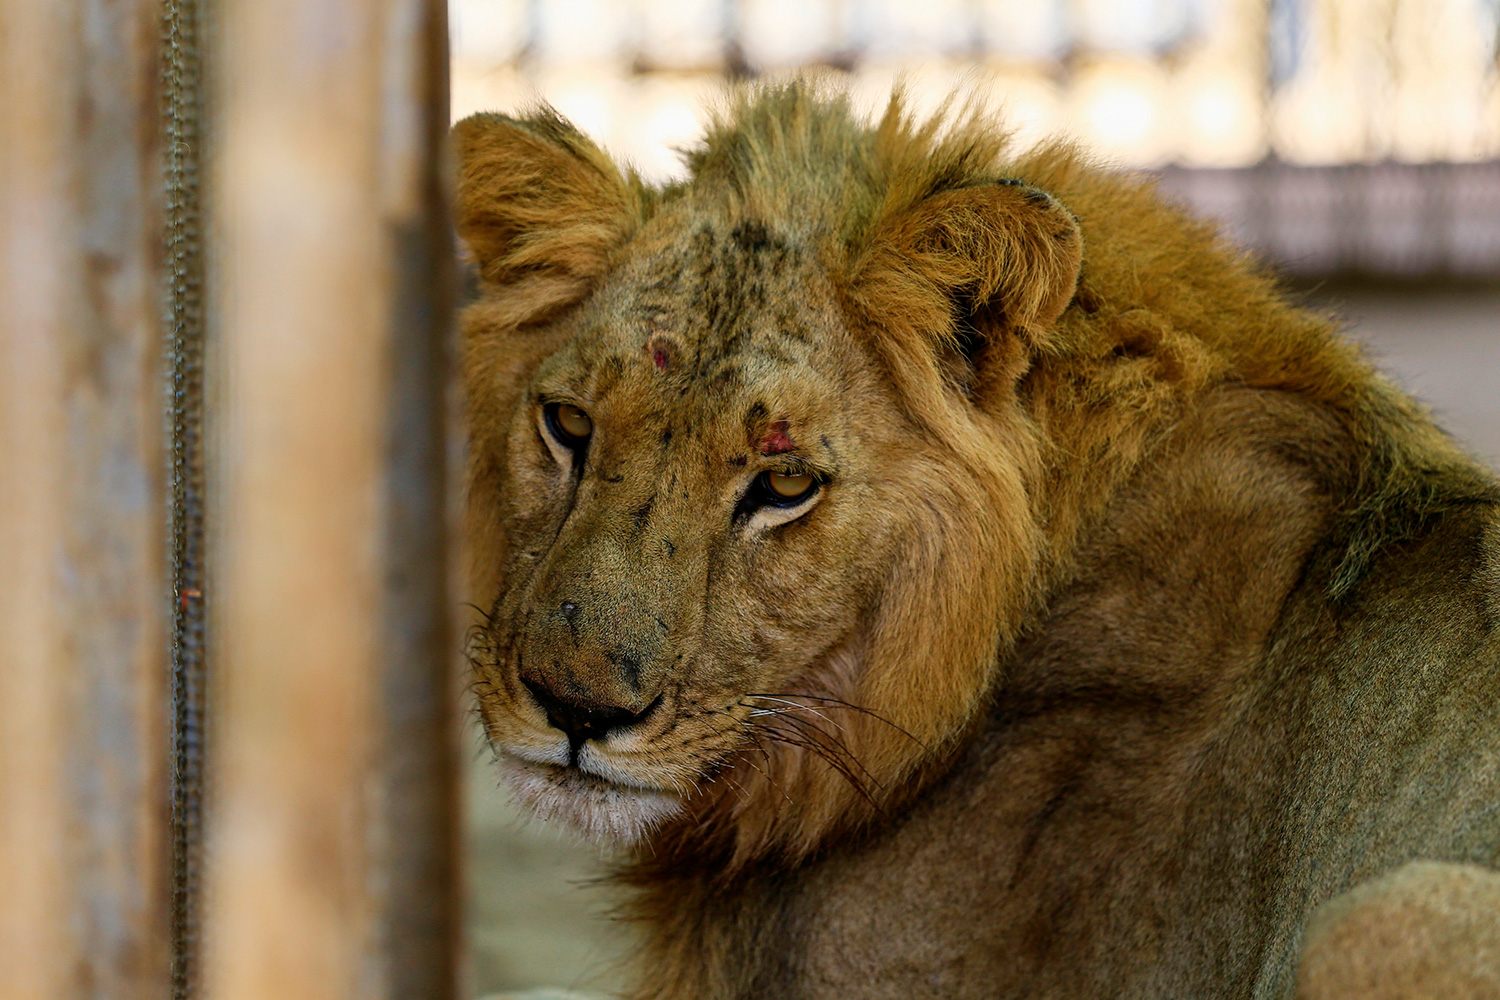 A malnourished lioness sits in her cage at the Al-Qureshi park in the Sudanese capital Khartoum on January 19, 2020. - Sudanese citizens and activists have launched a social media campaign to save five lions from starvation after complaints that they were not receiving their daily quota of meat